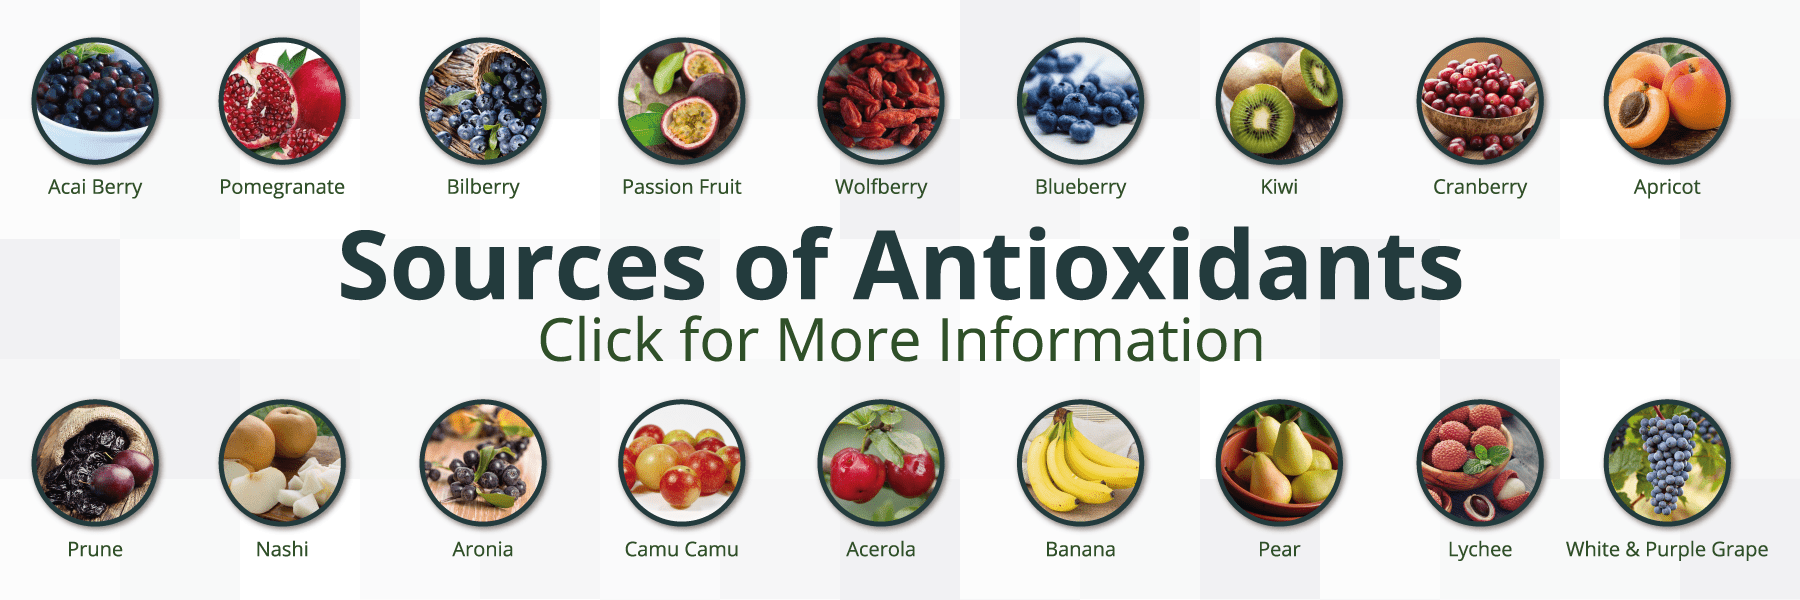 sources_of_antioxidants1